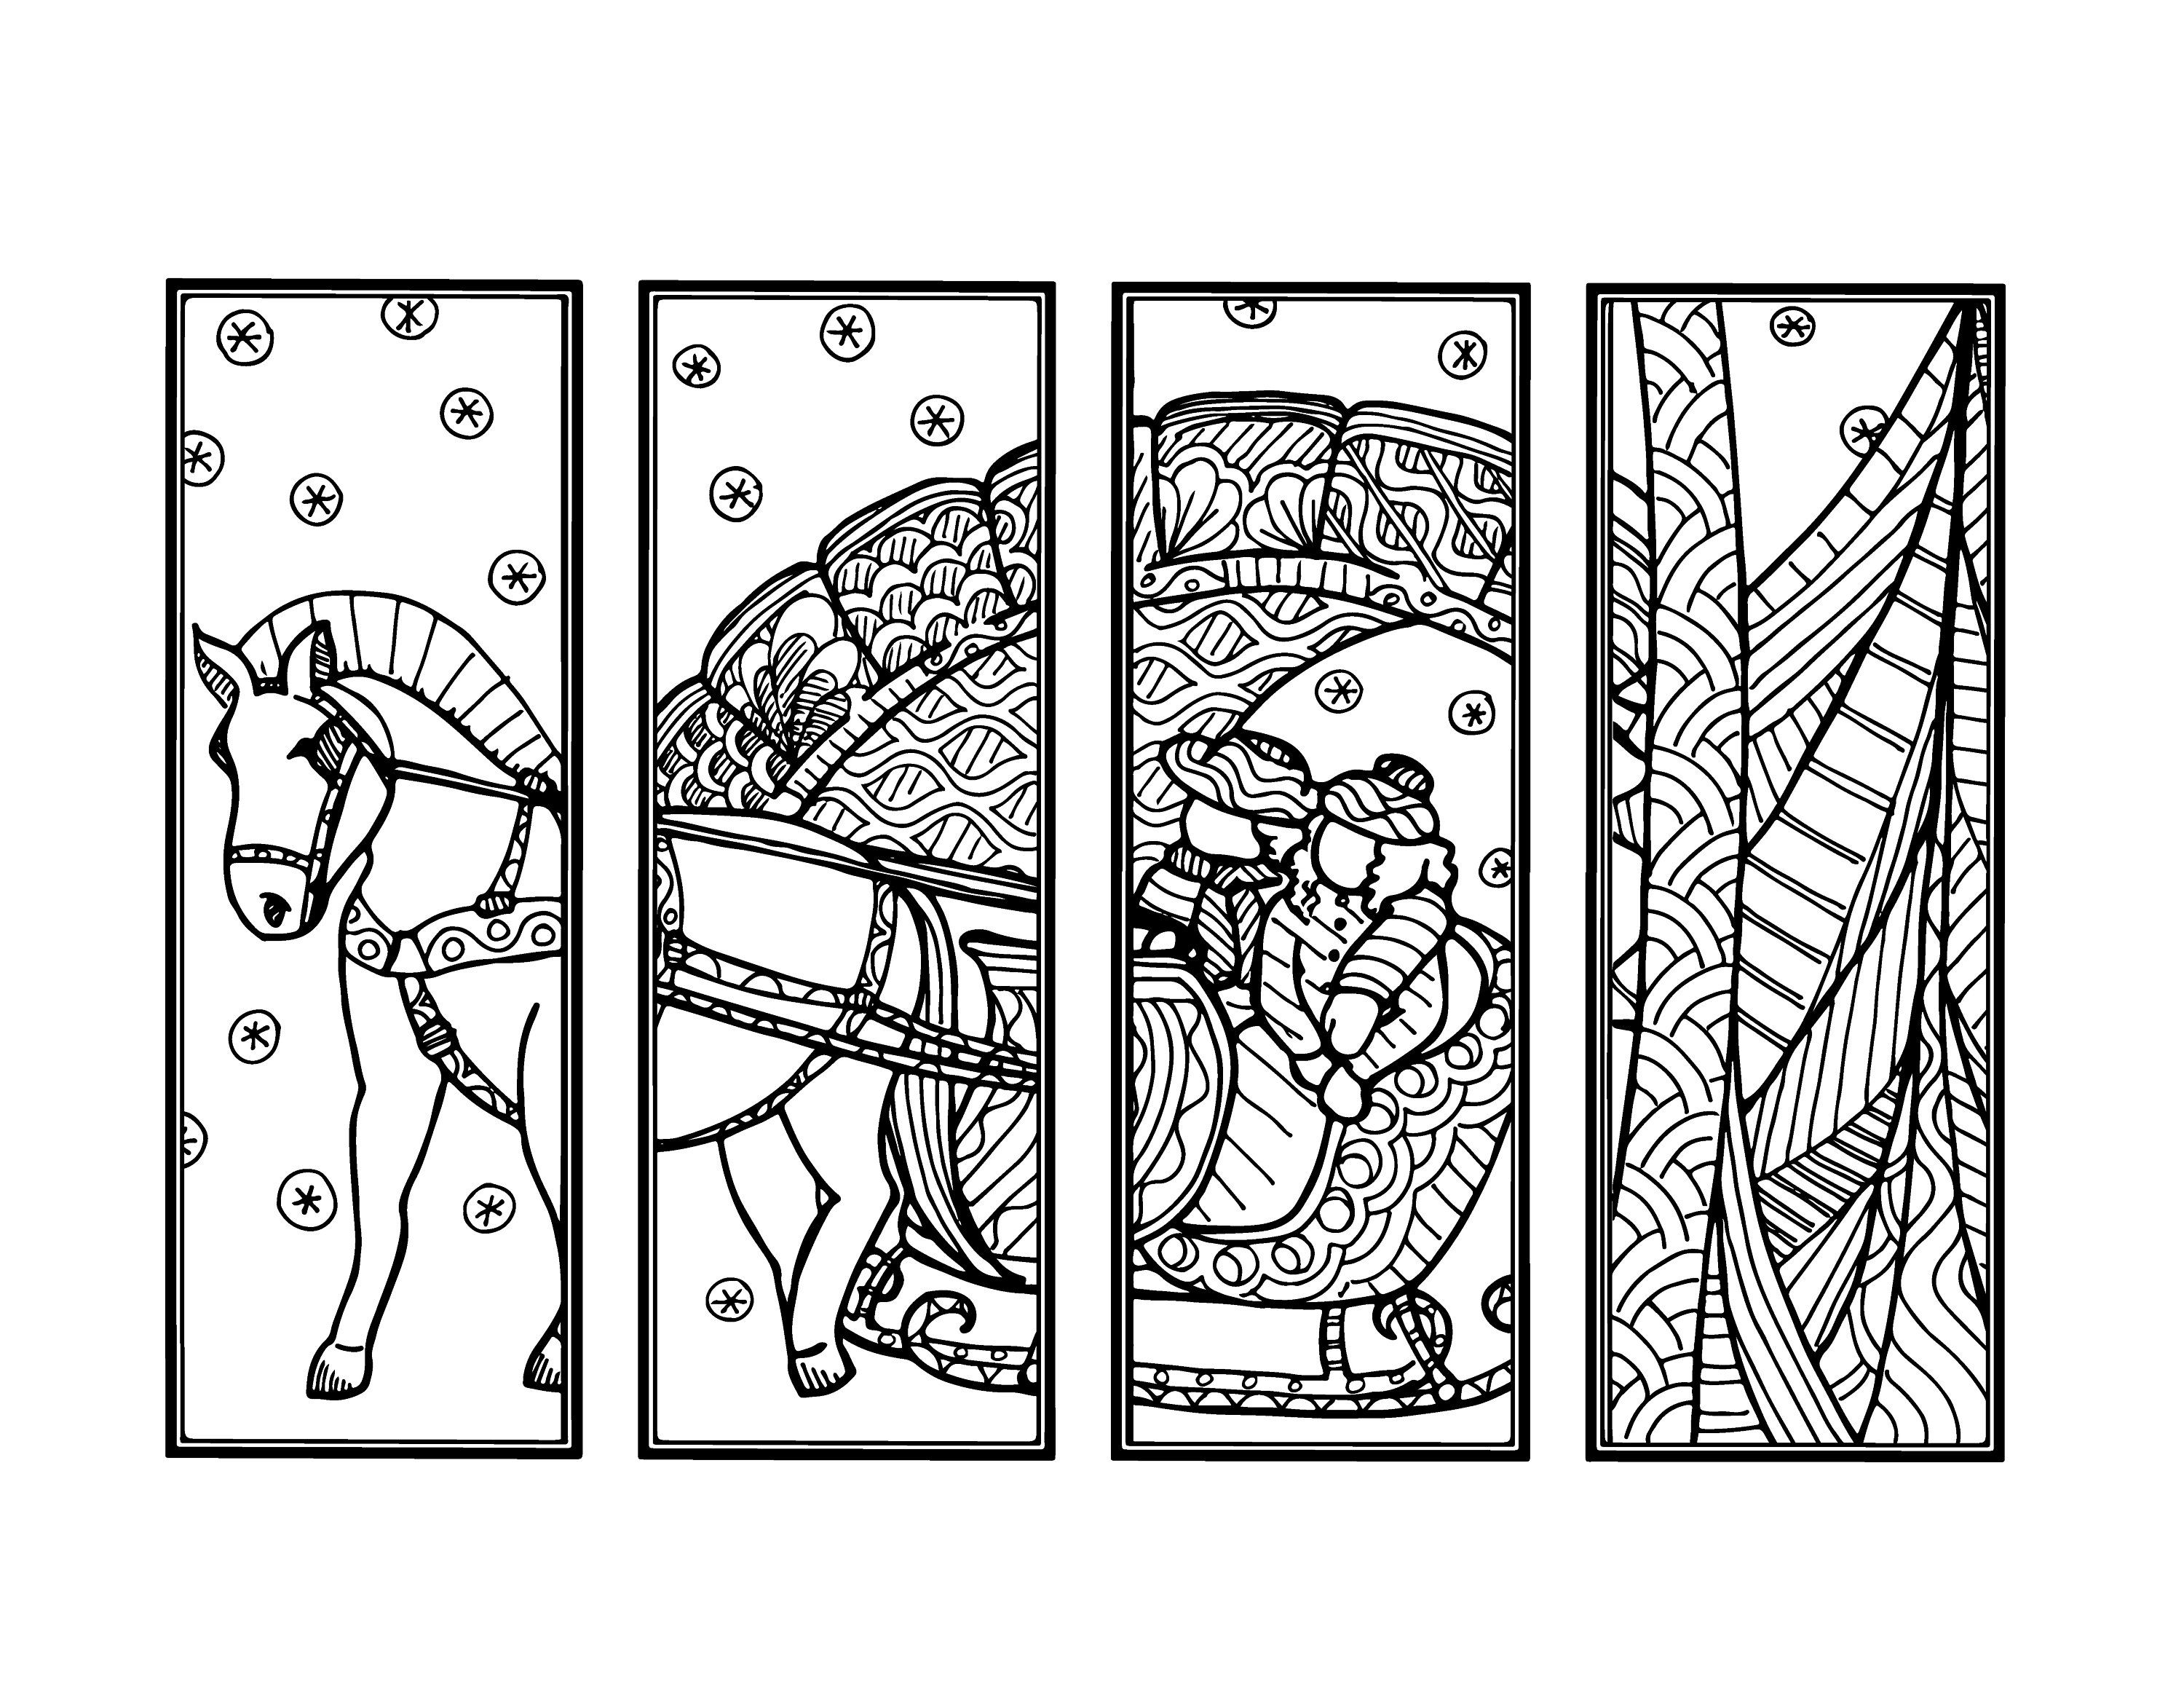 coloring christmas bookmarks diy sleighride bookmarks holiday crafts winter activity christmas coloring bookmarks